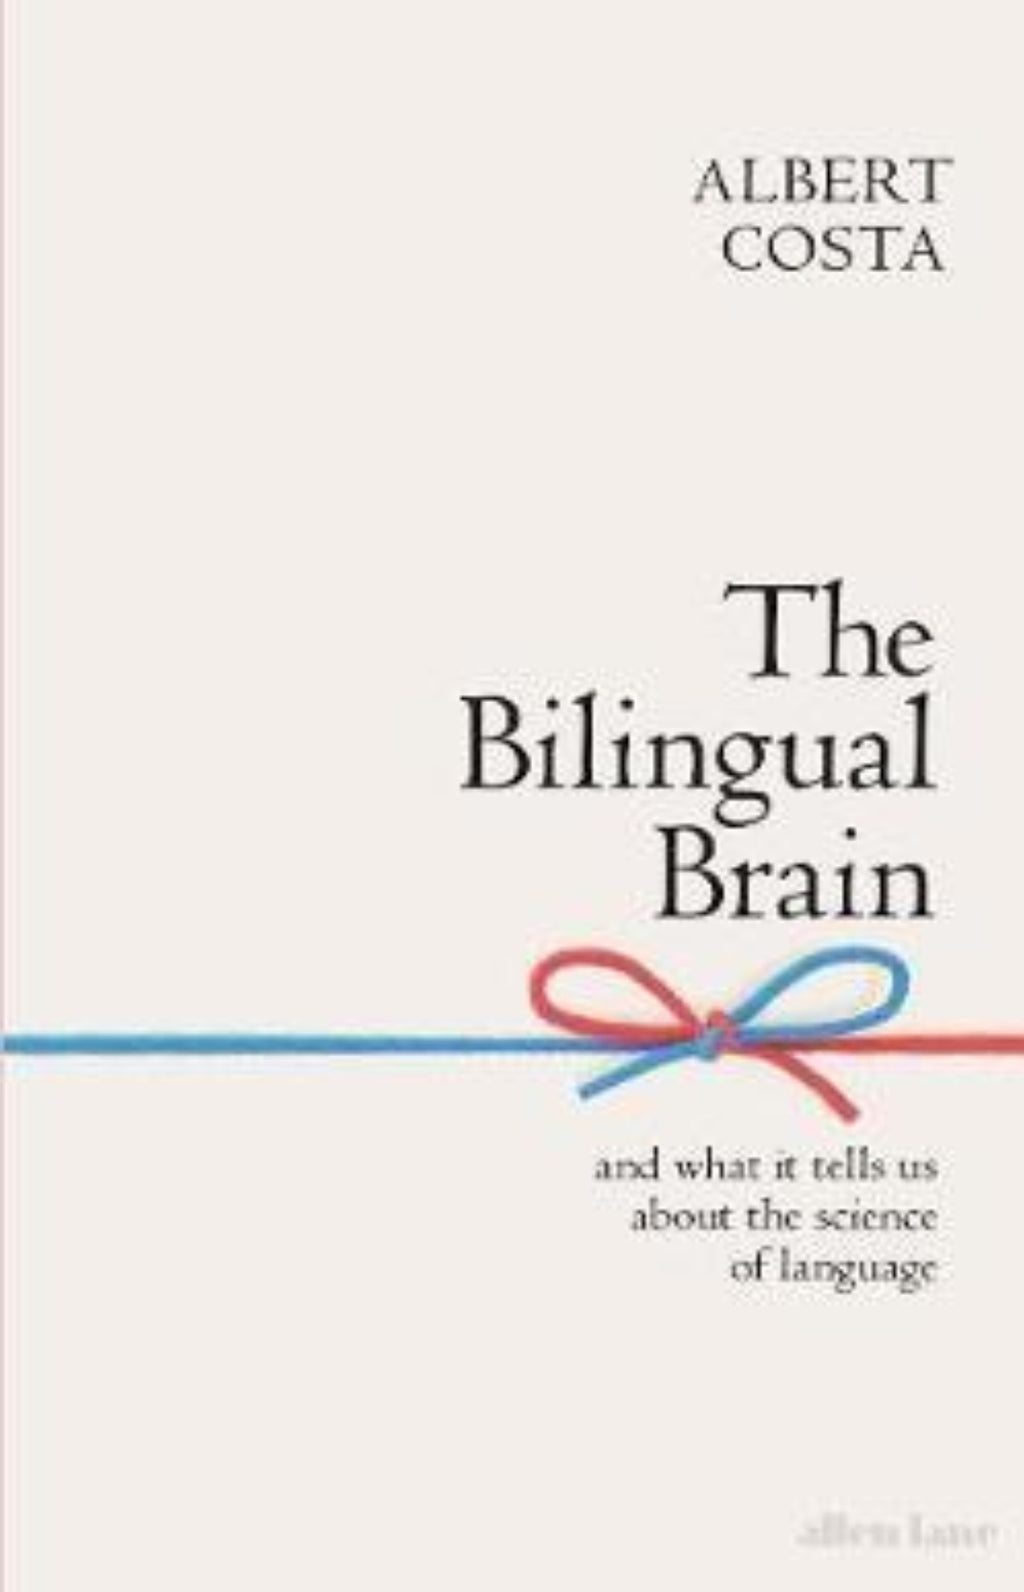 The Bilingual Brain : And What It Tells Us about the Science of Language